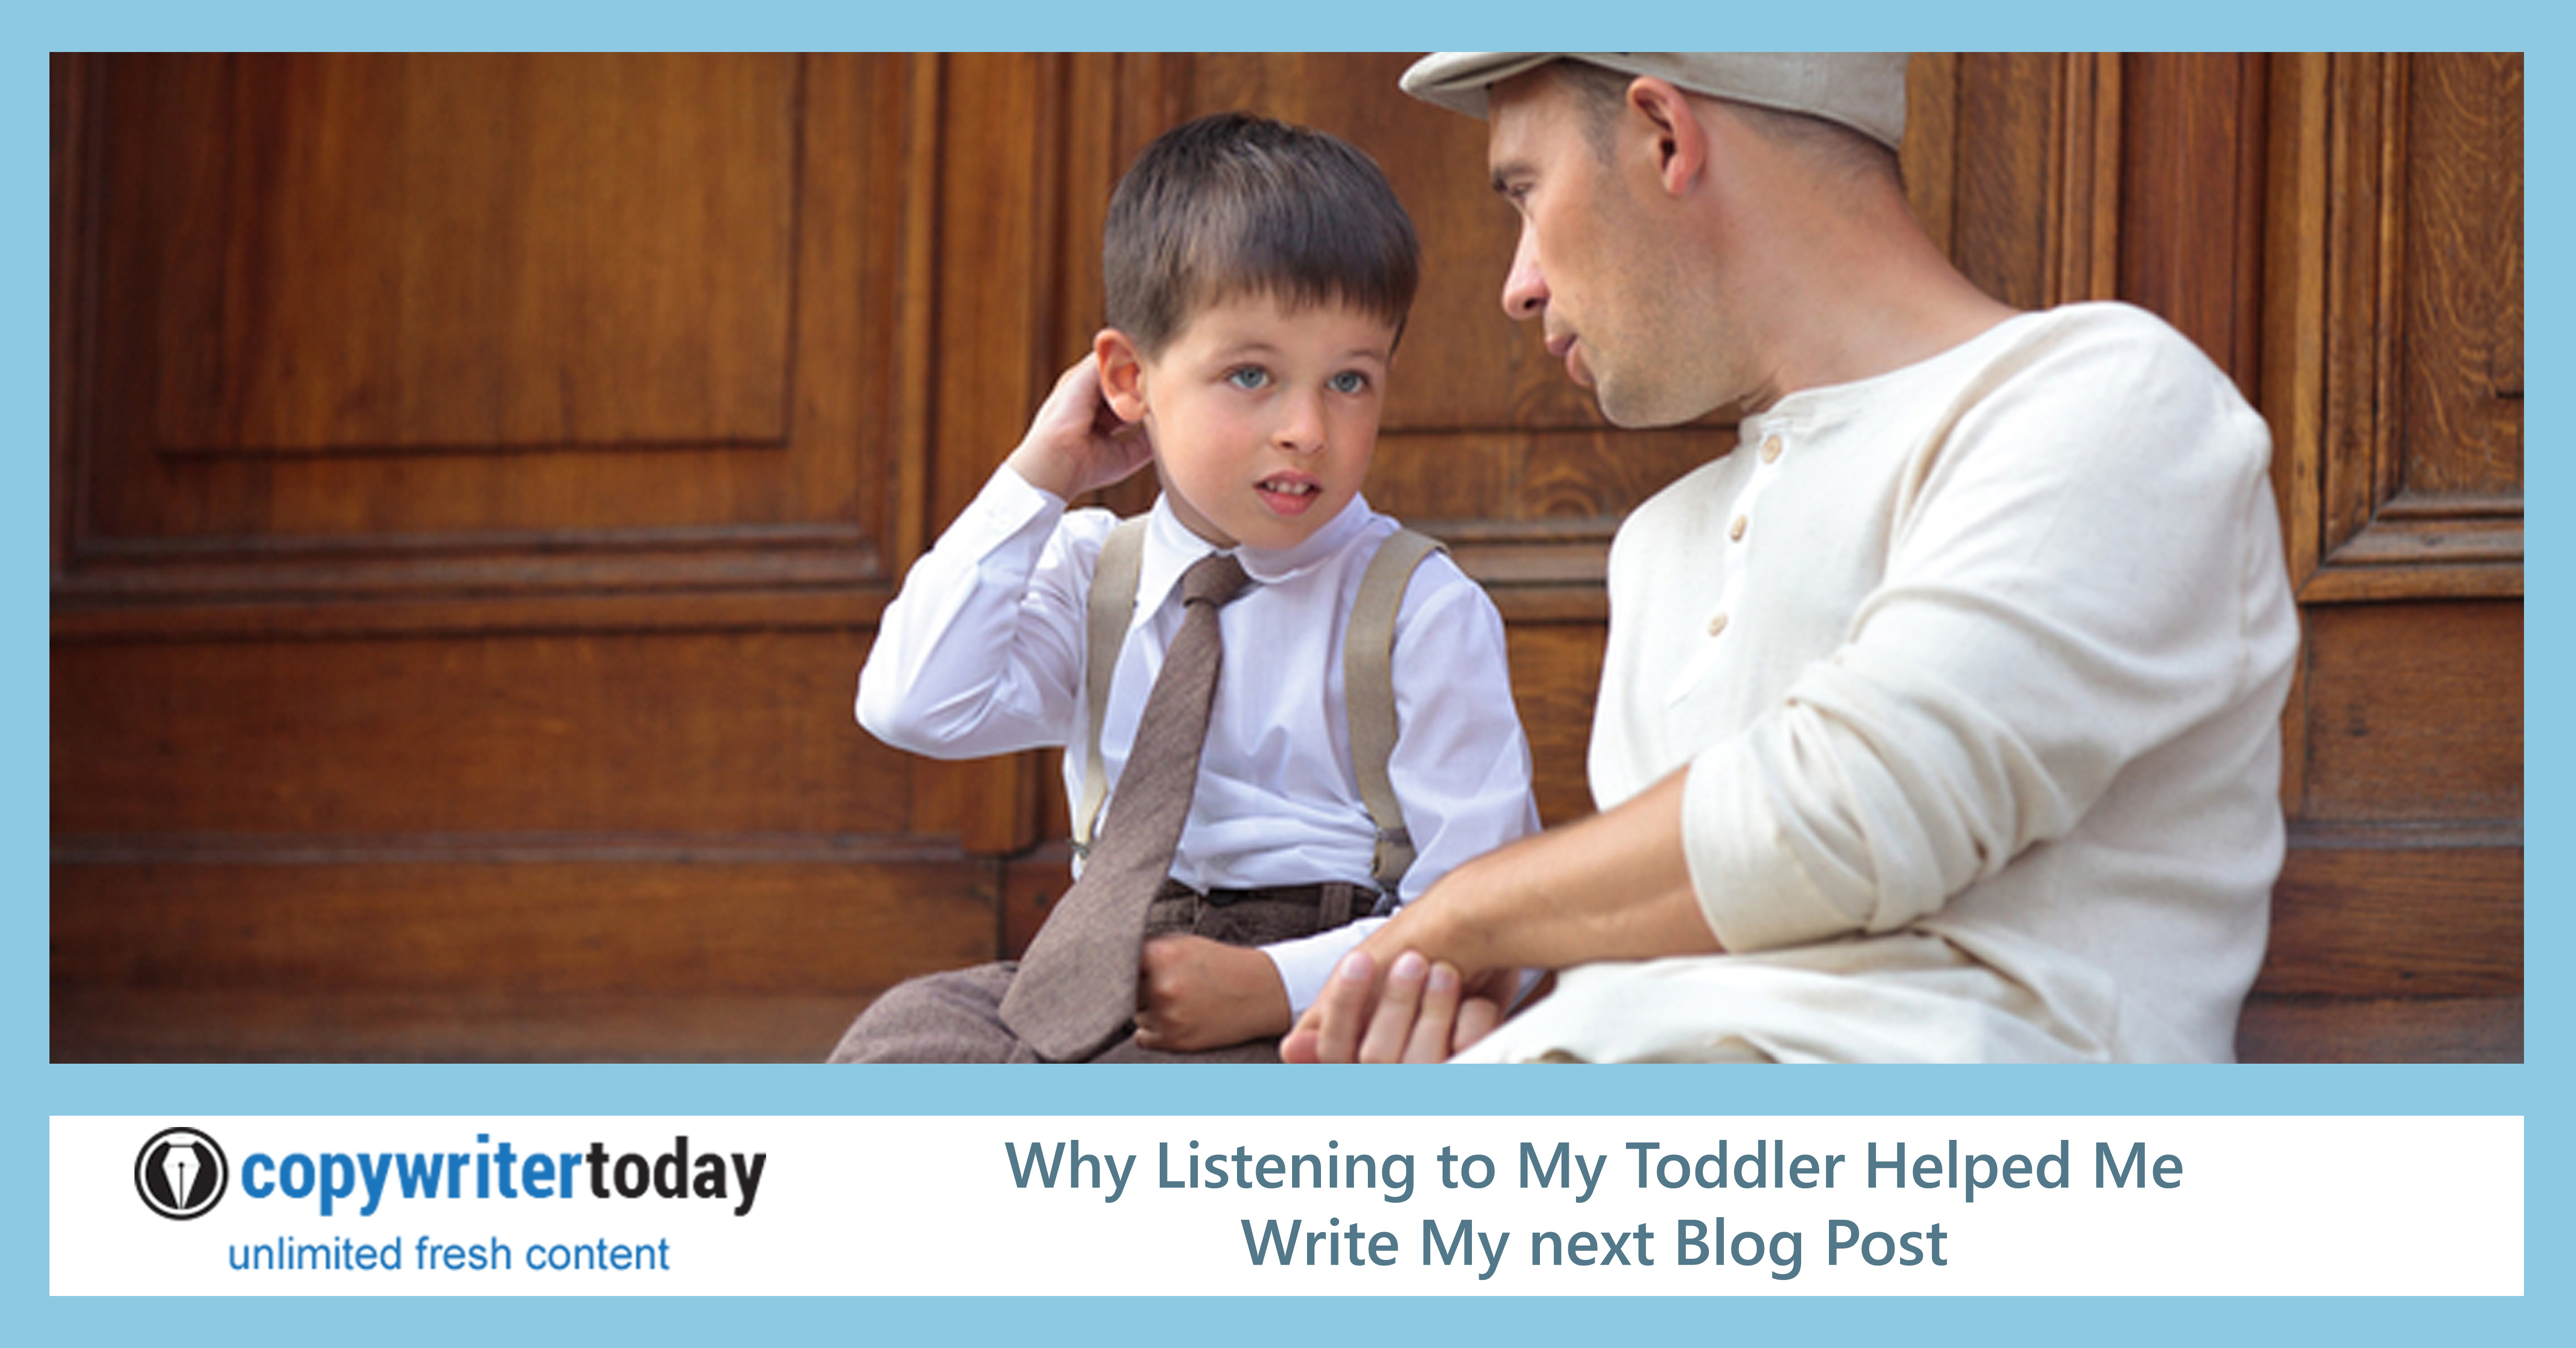 Why Listening to My Toddler Helped Me Write My Next Blog Post